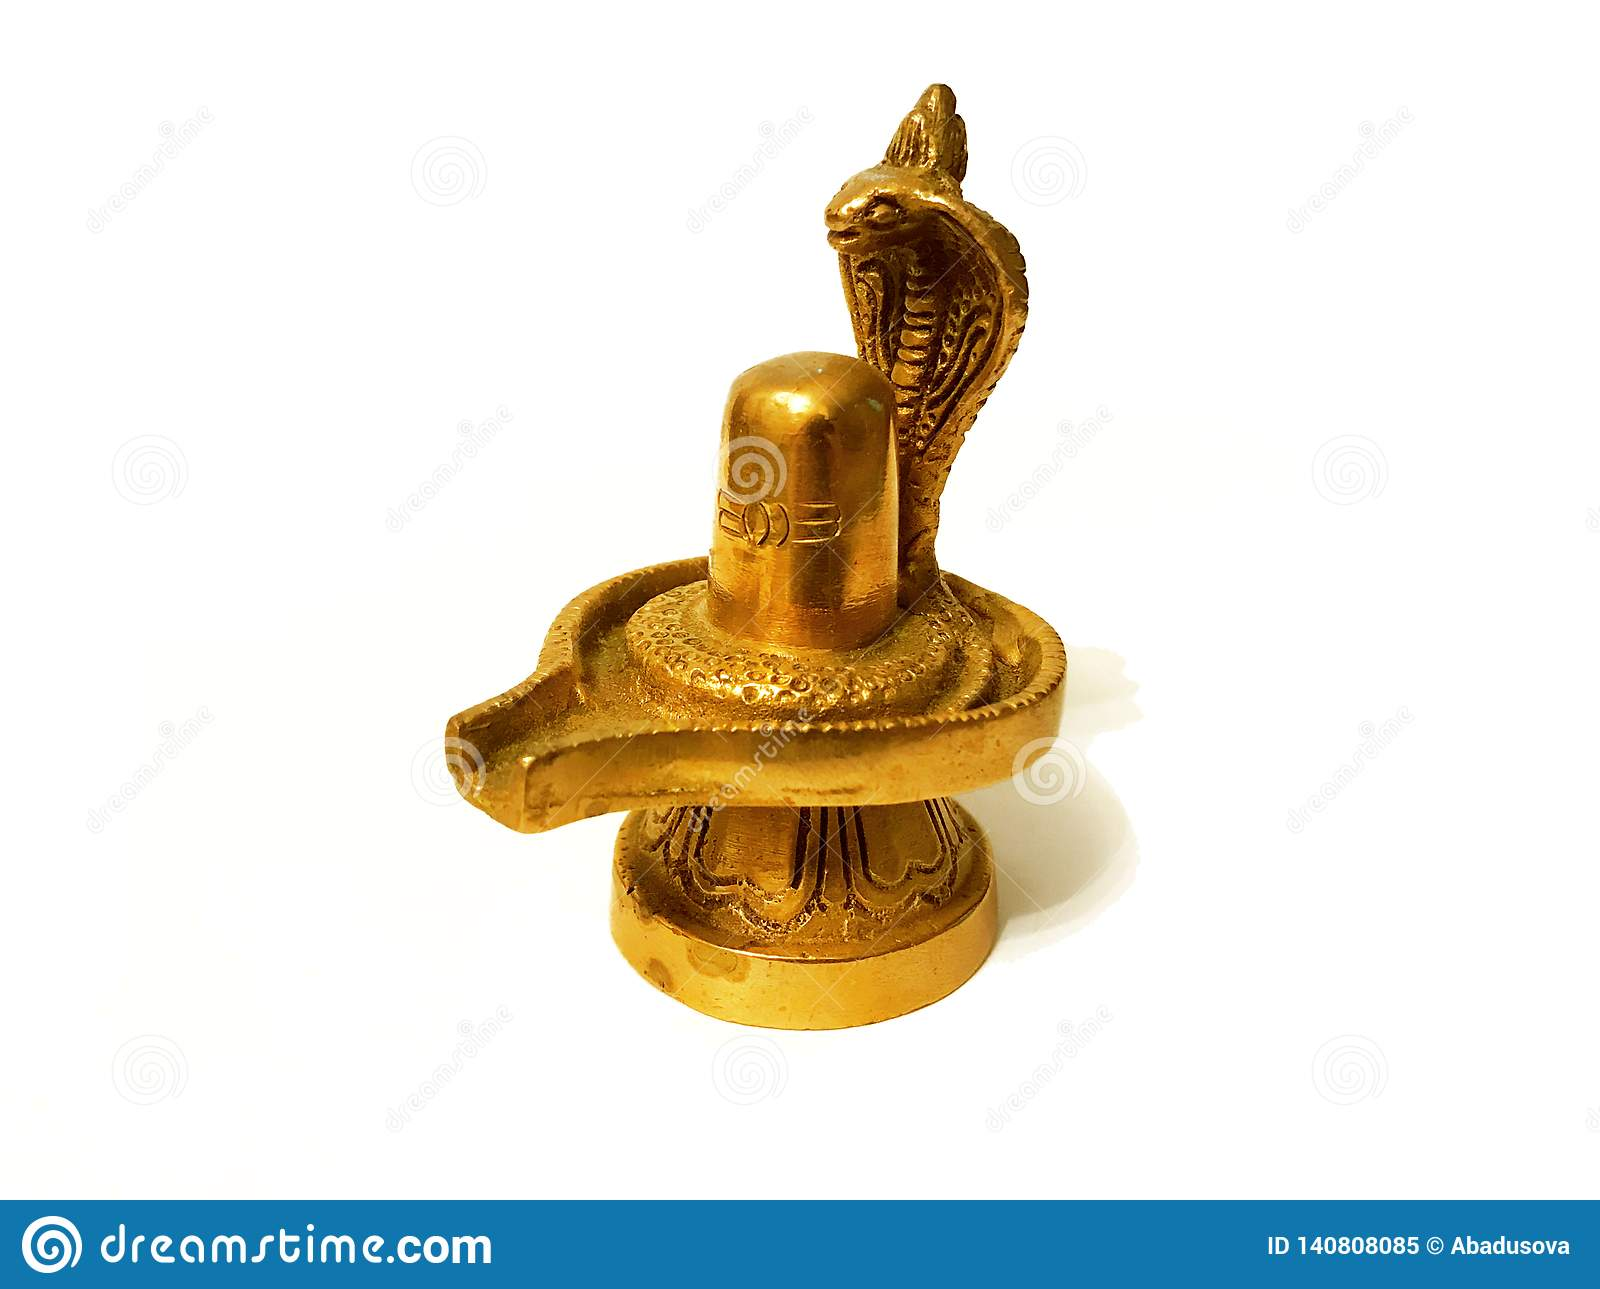 Gold Lord Shiva Lingam sculpture on white background